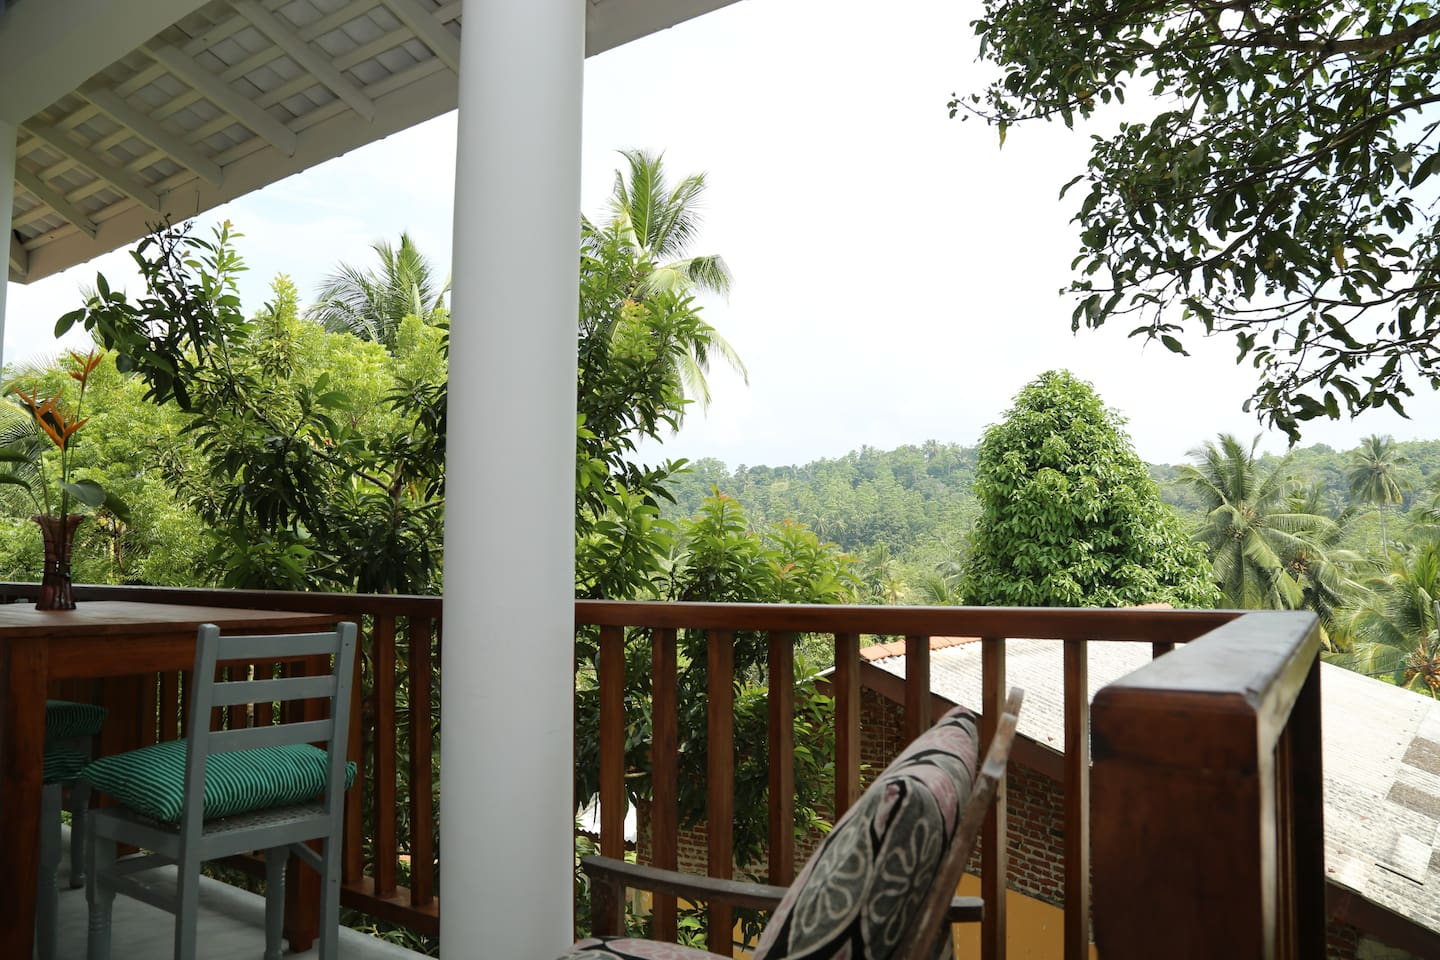 Apartment at Old Chilli House: The front entrance and balcony overlooking the lush green jungle.